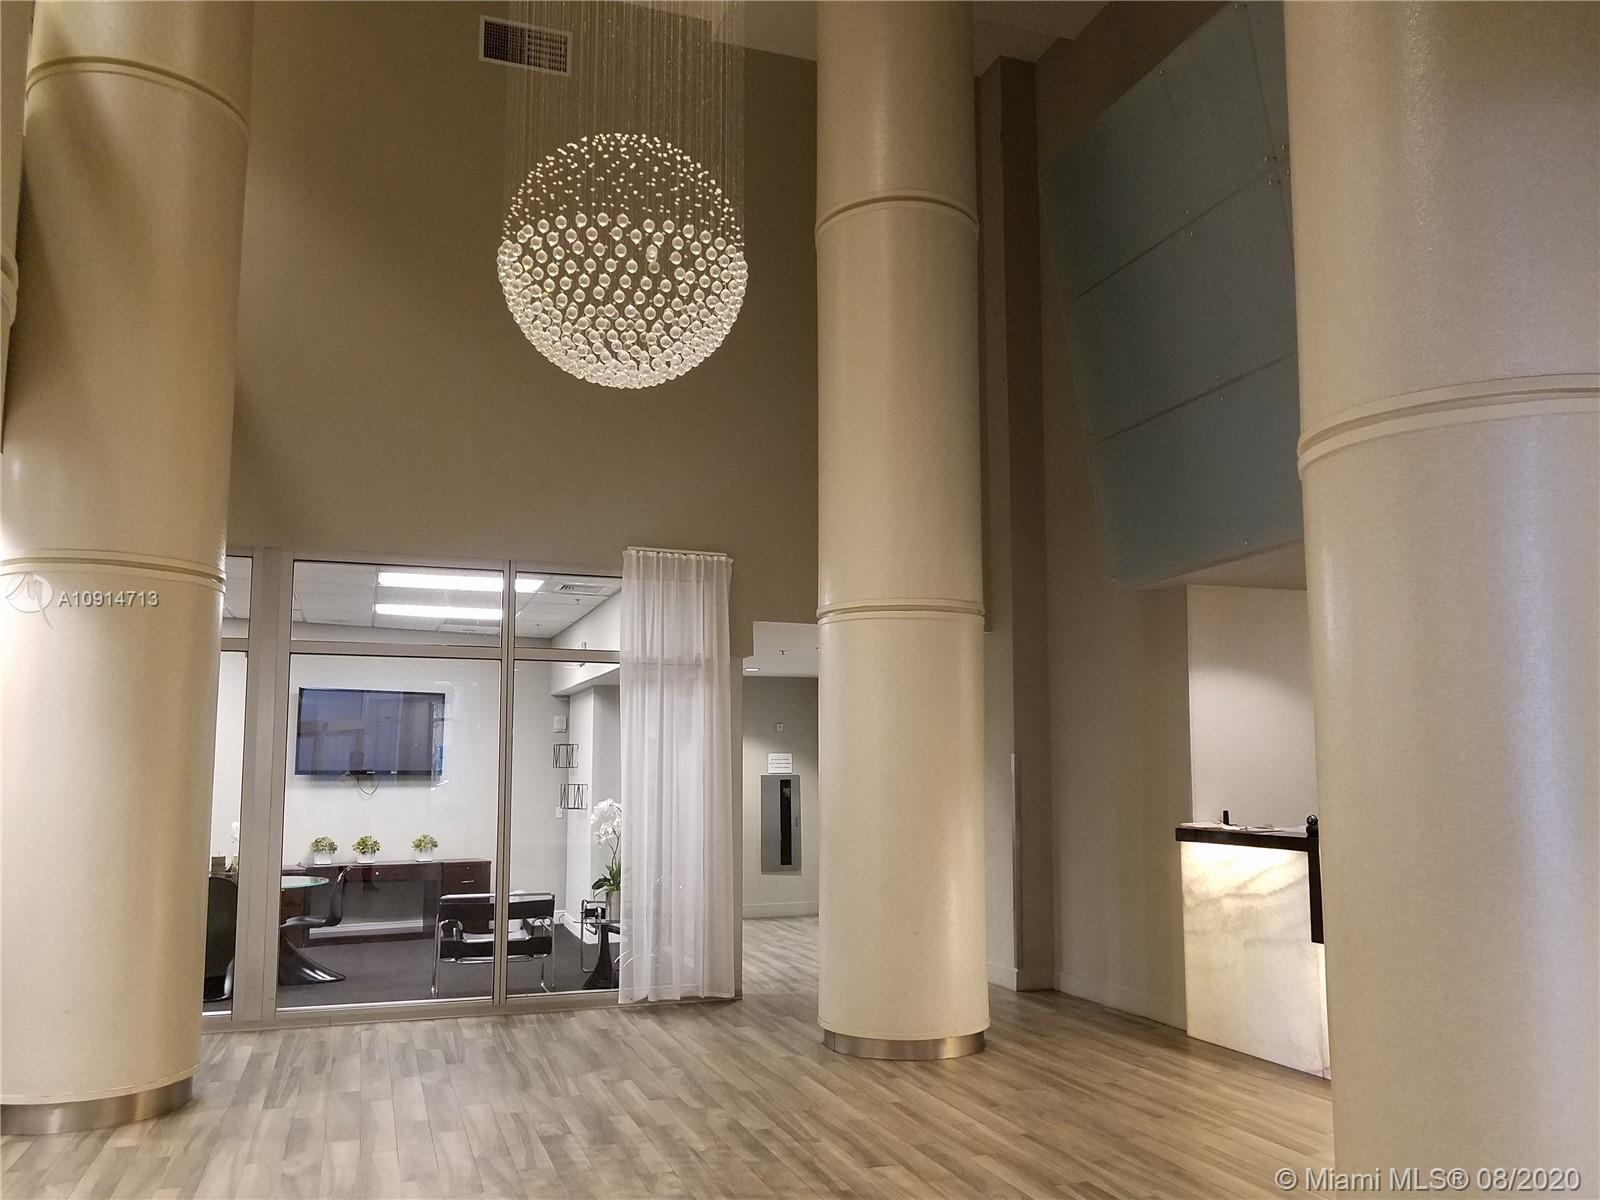 FANTASTIC 2 BEDROOM, 2 BATHROOM CONDO AT THE LUXURIOUS OPERA TOWER.   MARBLE FLOORS THROUGHOUT THE